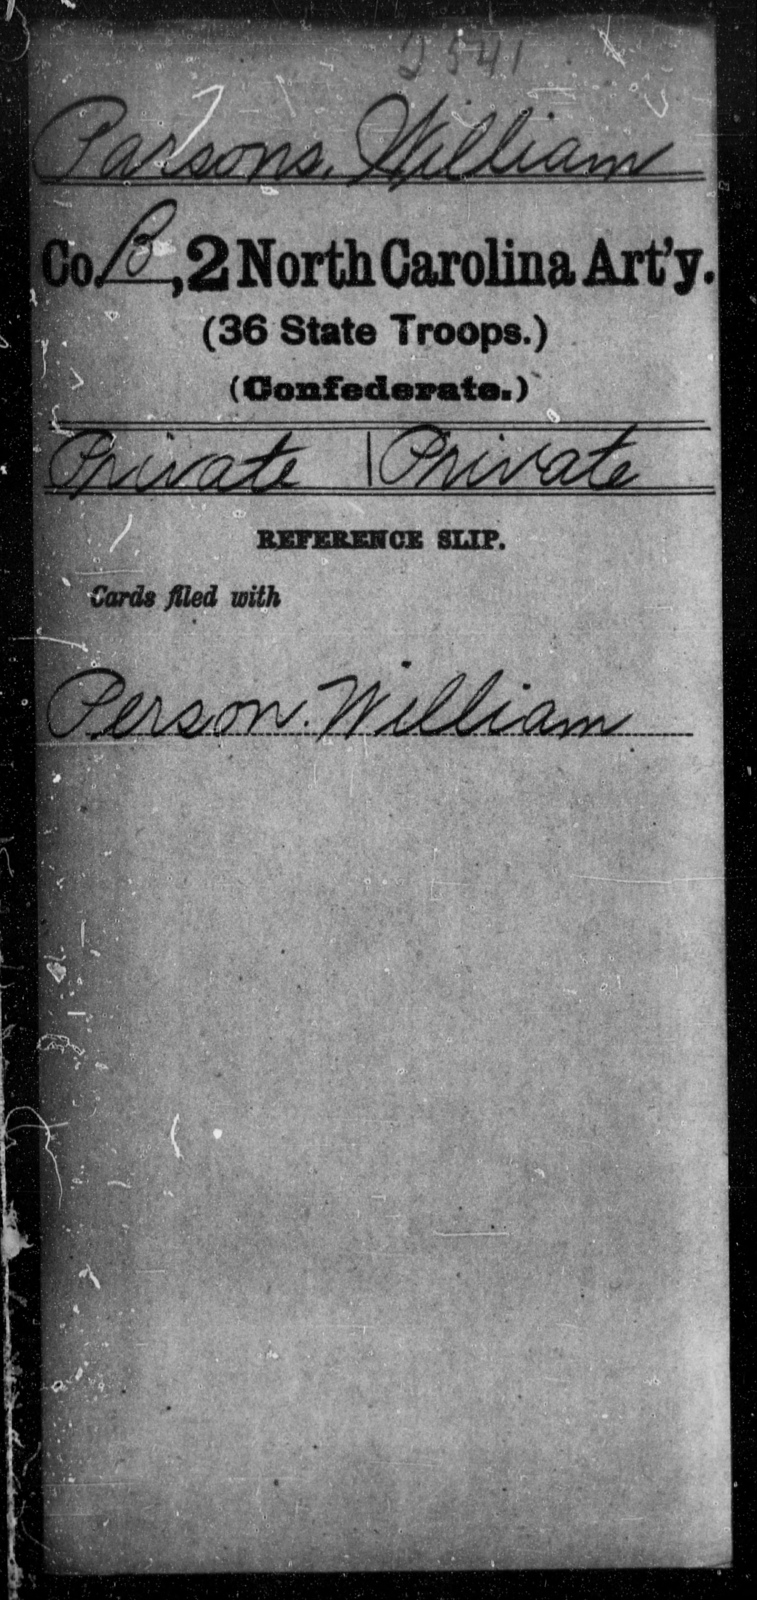 Parsons, William - Second Artillery (36th State Troops)